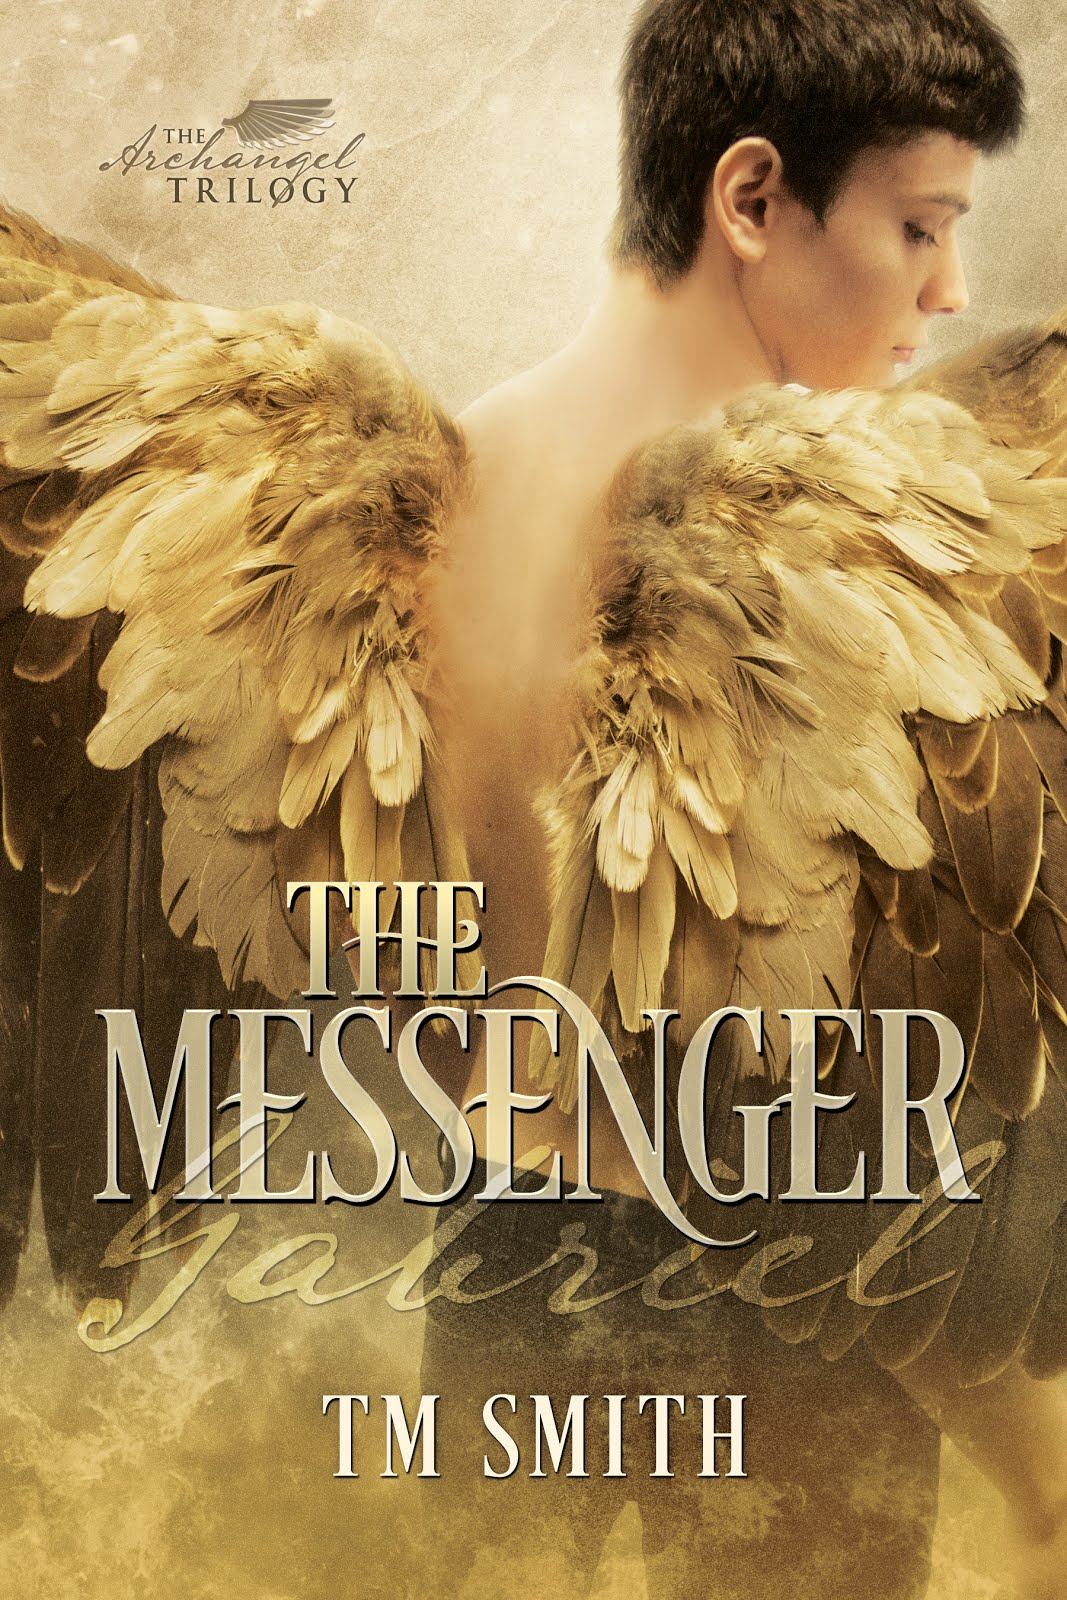 The Messenger is now available for preorder from Amazon